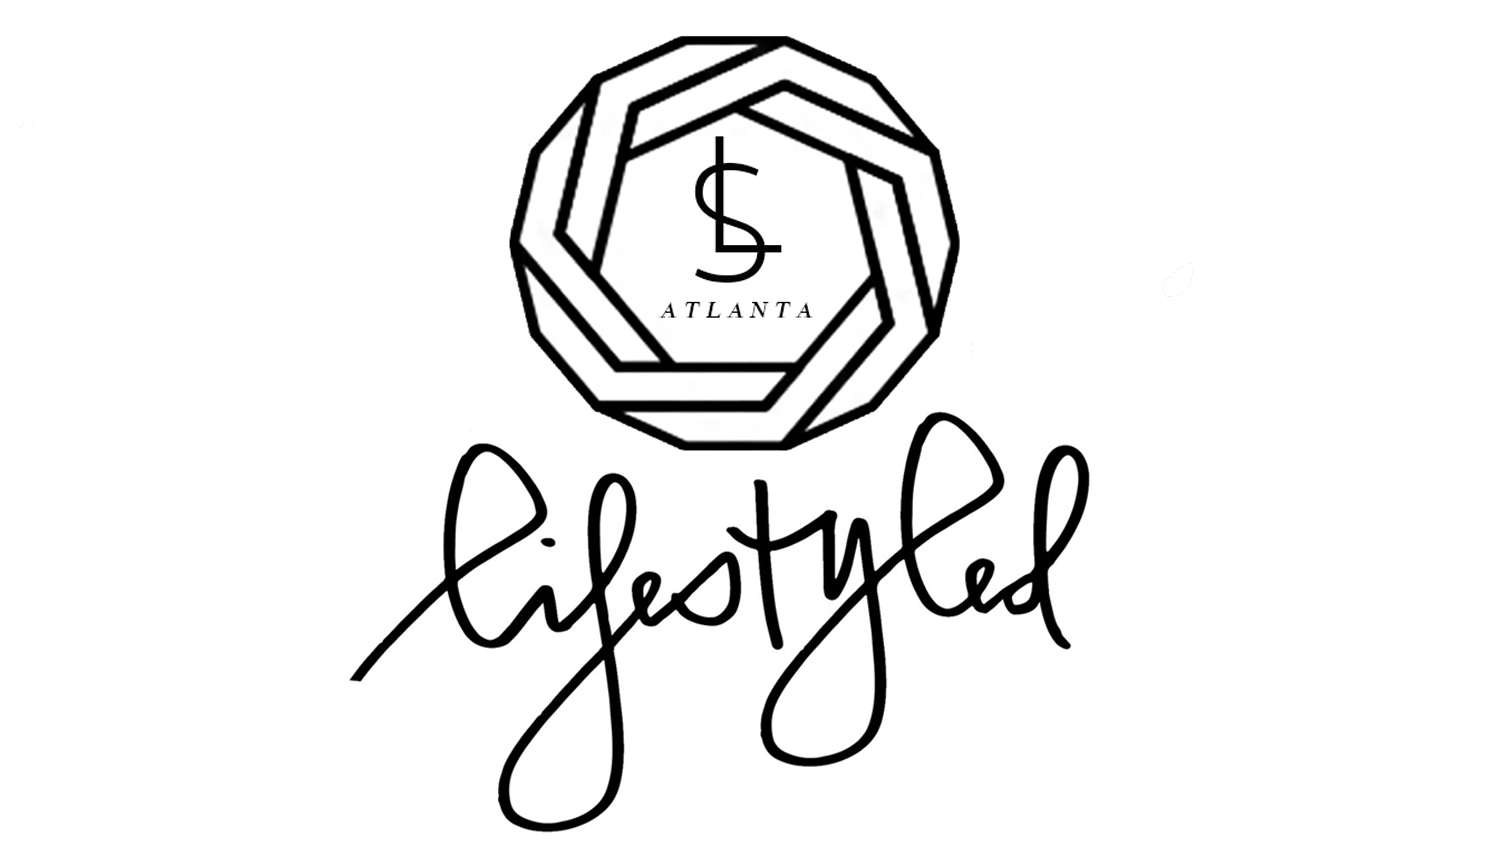 Lifestyled | Atlanta